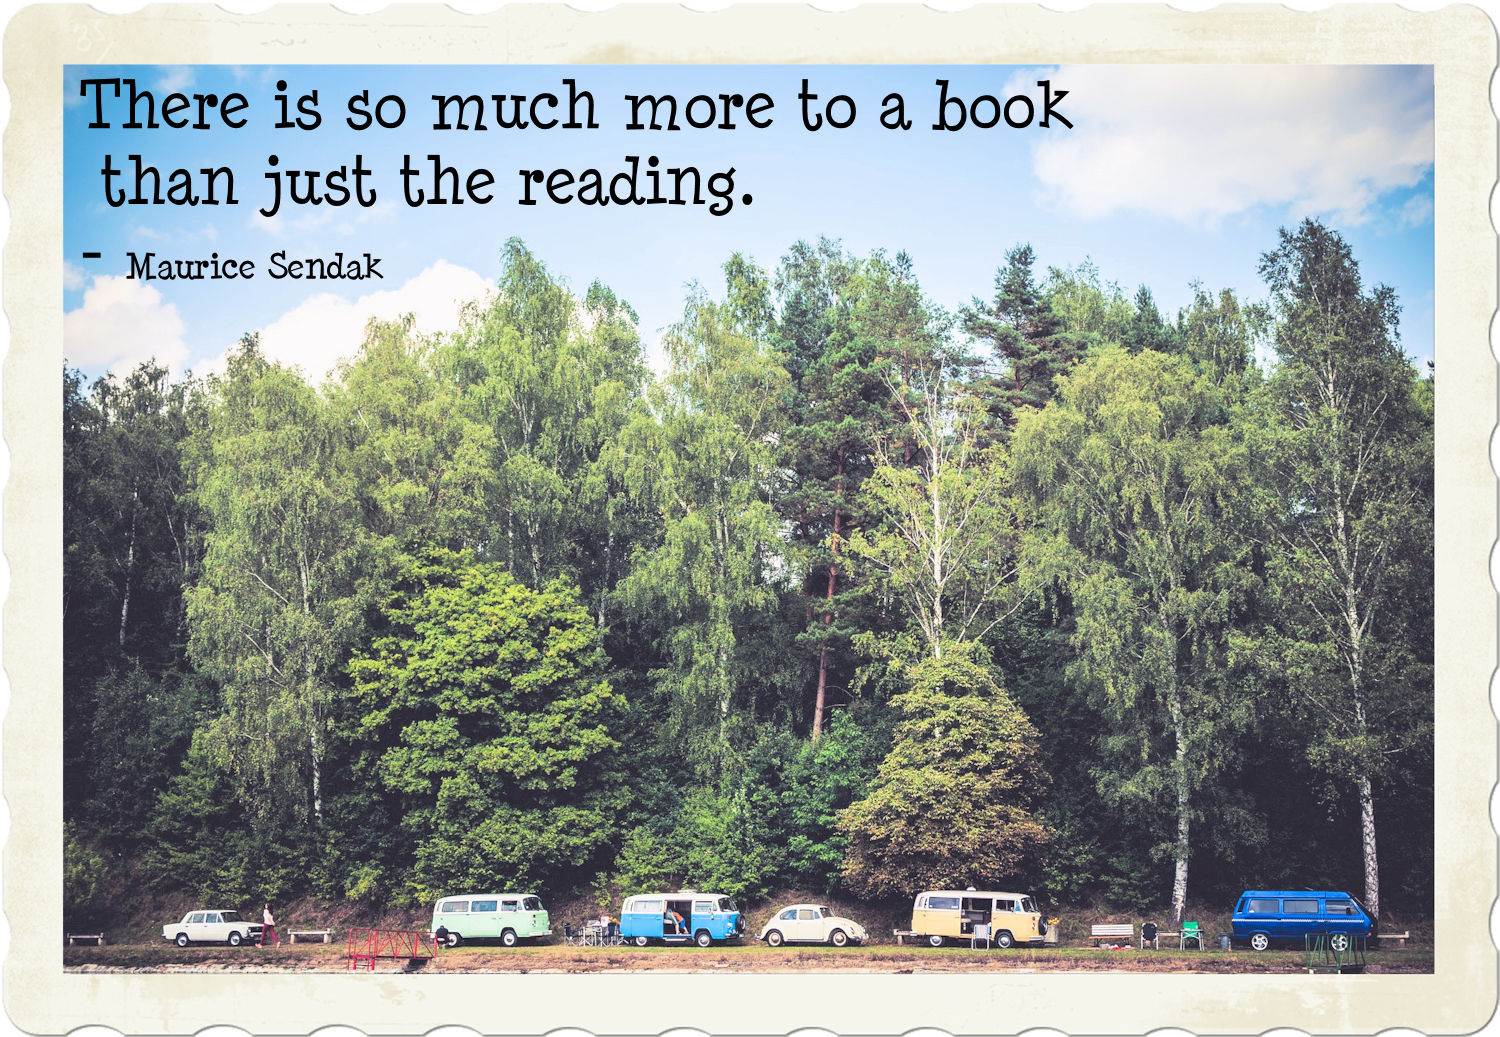 There is so much more to a book than just the reading. - Maurice Sendak